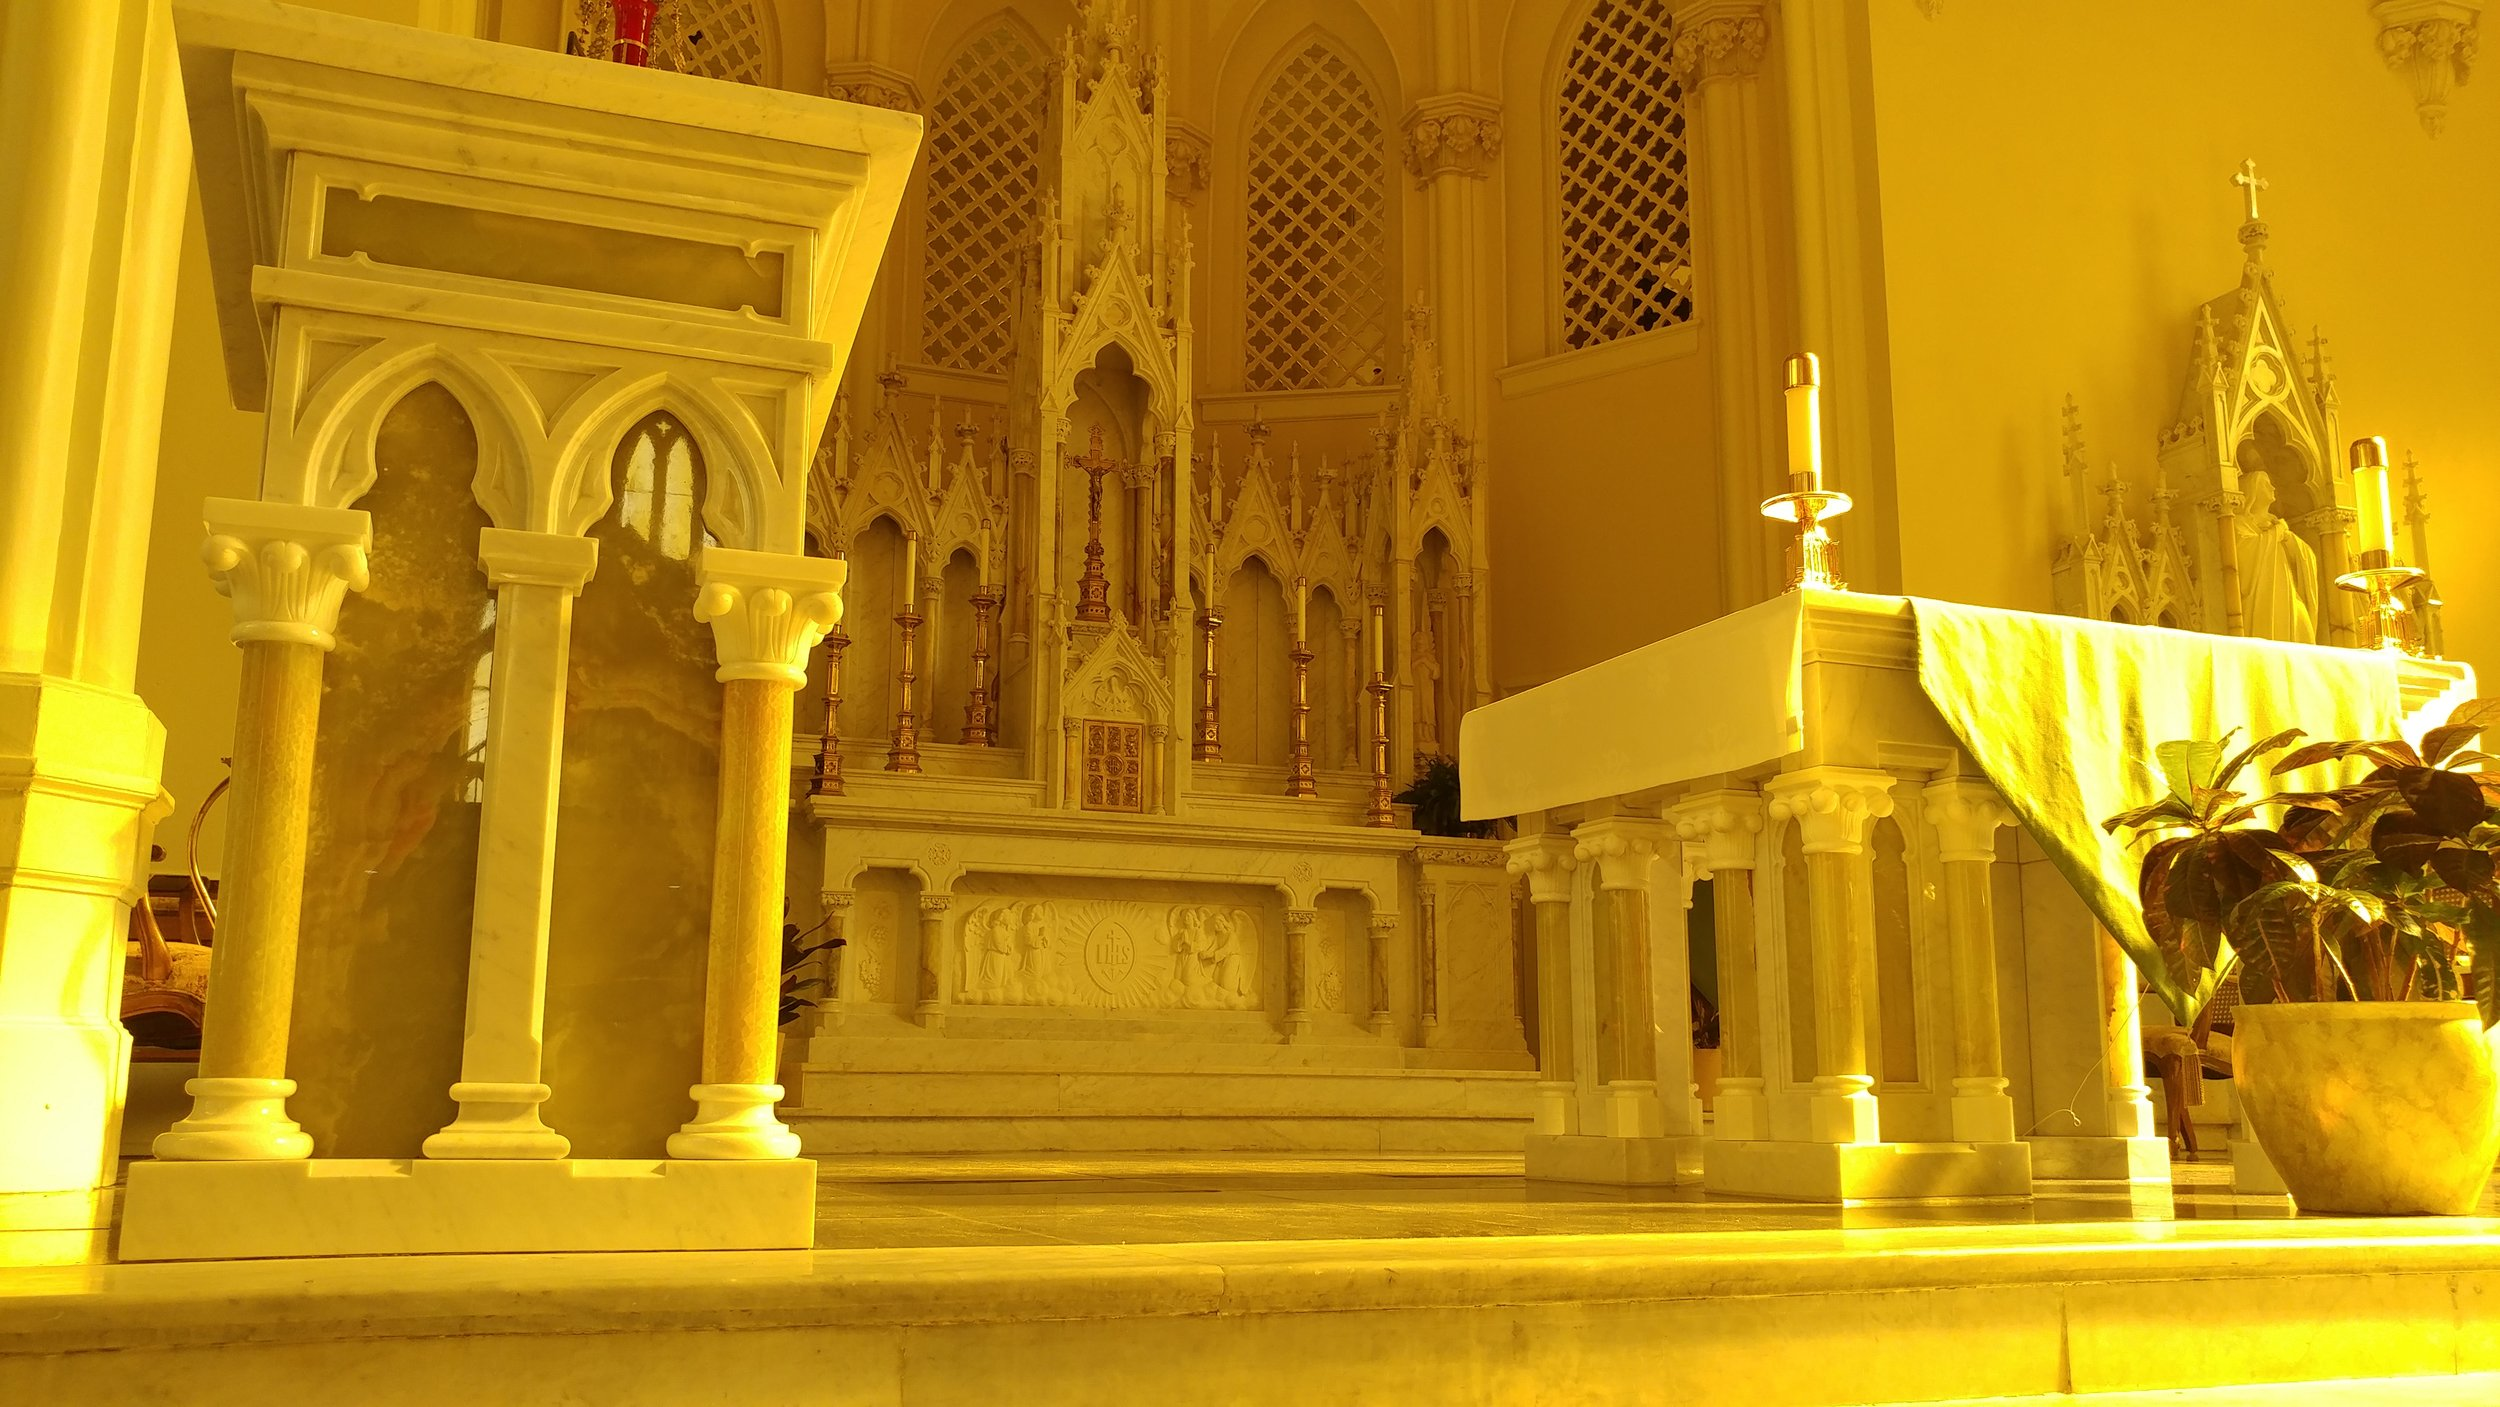 This photo was taken at the main altar at St. Joseph's Chapel located at Spring Hill College in Mobile, AL. Depending on where you stand in the afternoon at this gorgeous chapel, the altar is bathed in different colors. Taken at this angle, in this spot, at this time, the chapel basks in a vibrant gold light. To me, it is the most beautiful place of worship in the Archdiocese of Mobile.